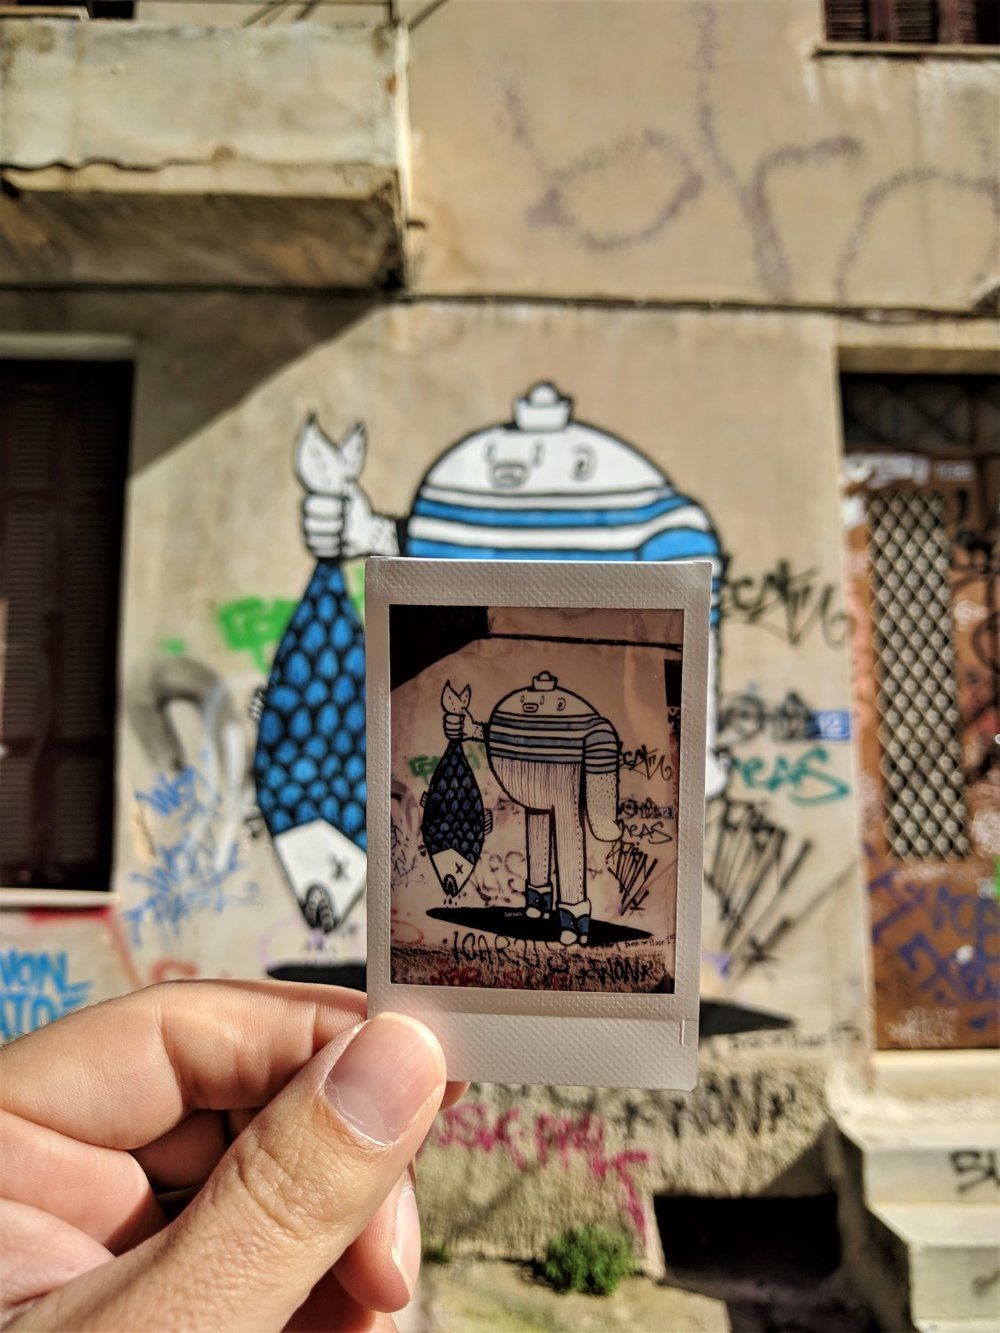 """Another cute graffiti on a polaroid image, captured in our """" Unconventional Instant Photo Tour """"."""